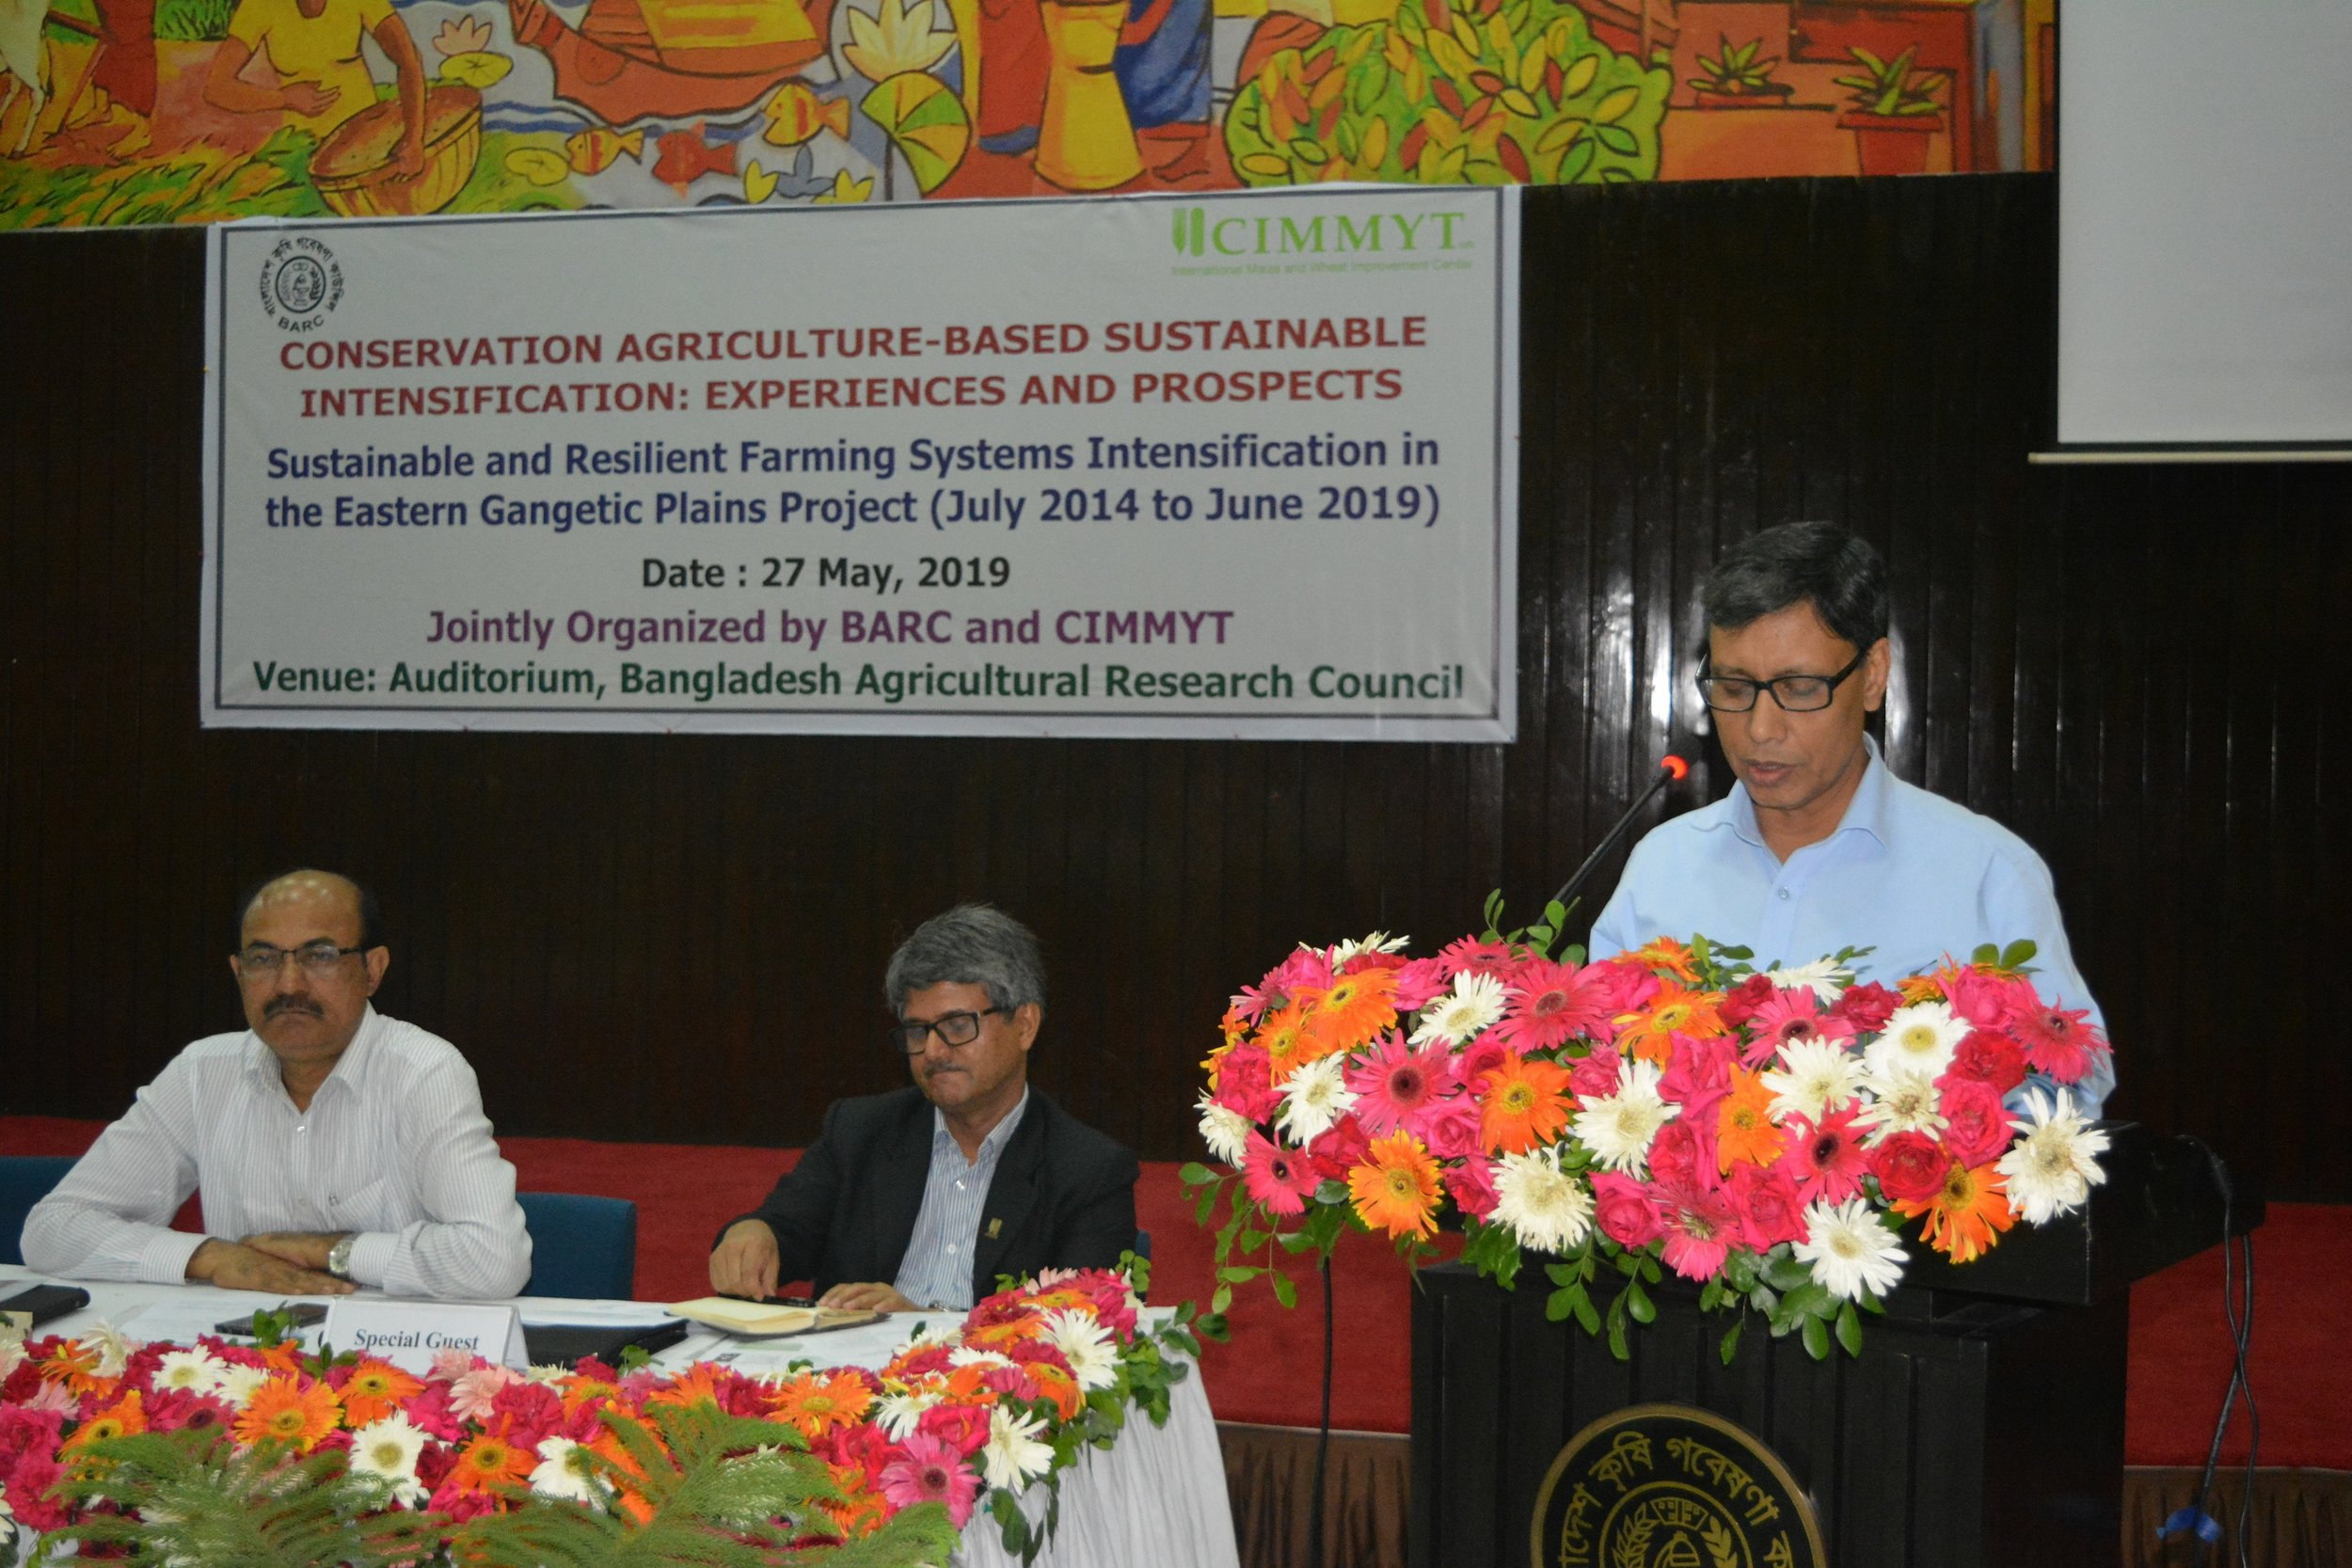 Secretary for the Ministry of Agriculture, Md. Nasiruzzaman, expressed his satisfaction with the progress of SRFSI to date, highlighting the importance of the project addressing the burning issues of labor, water and climate change while contributing to Bangladesh's food security goals.